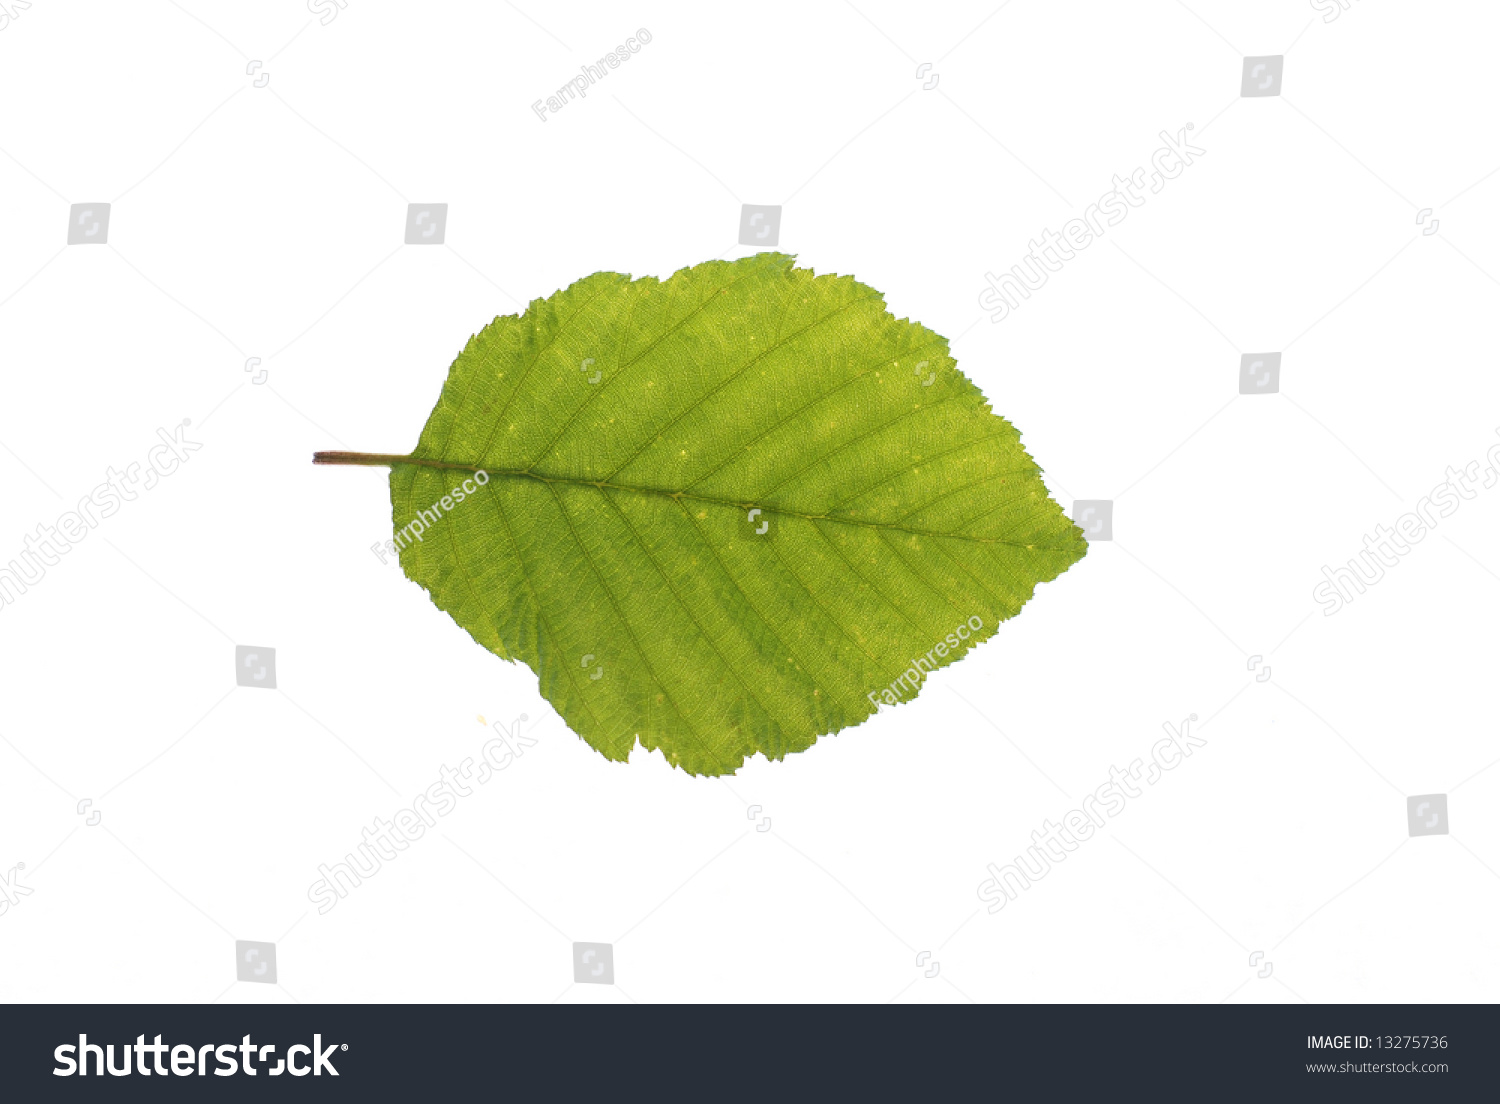 Witch Hazel Leaf Isolated On White Stock Photo 13275736 - Shutterstock